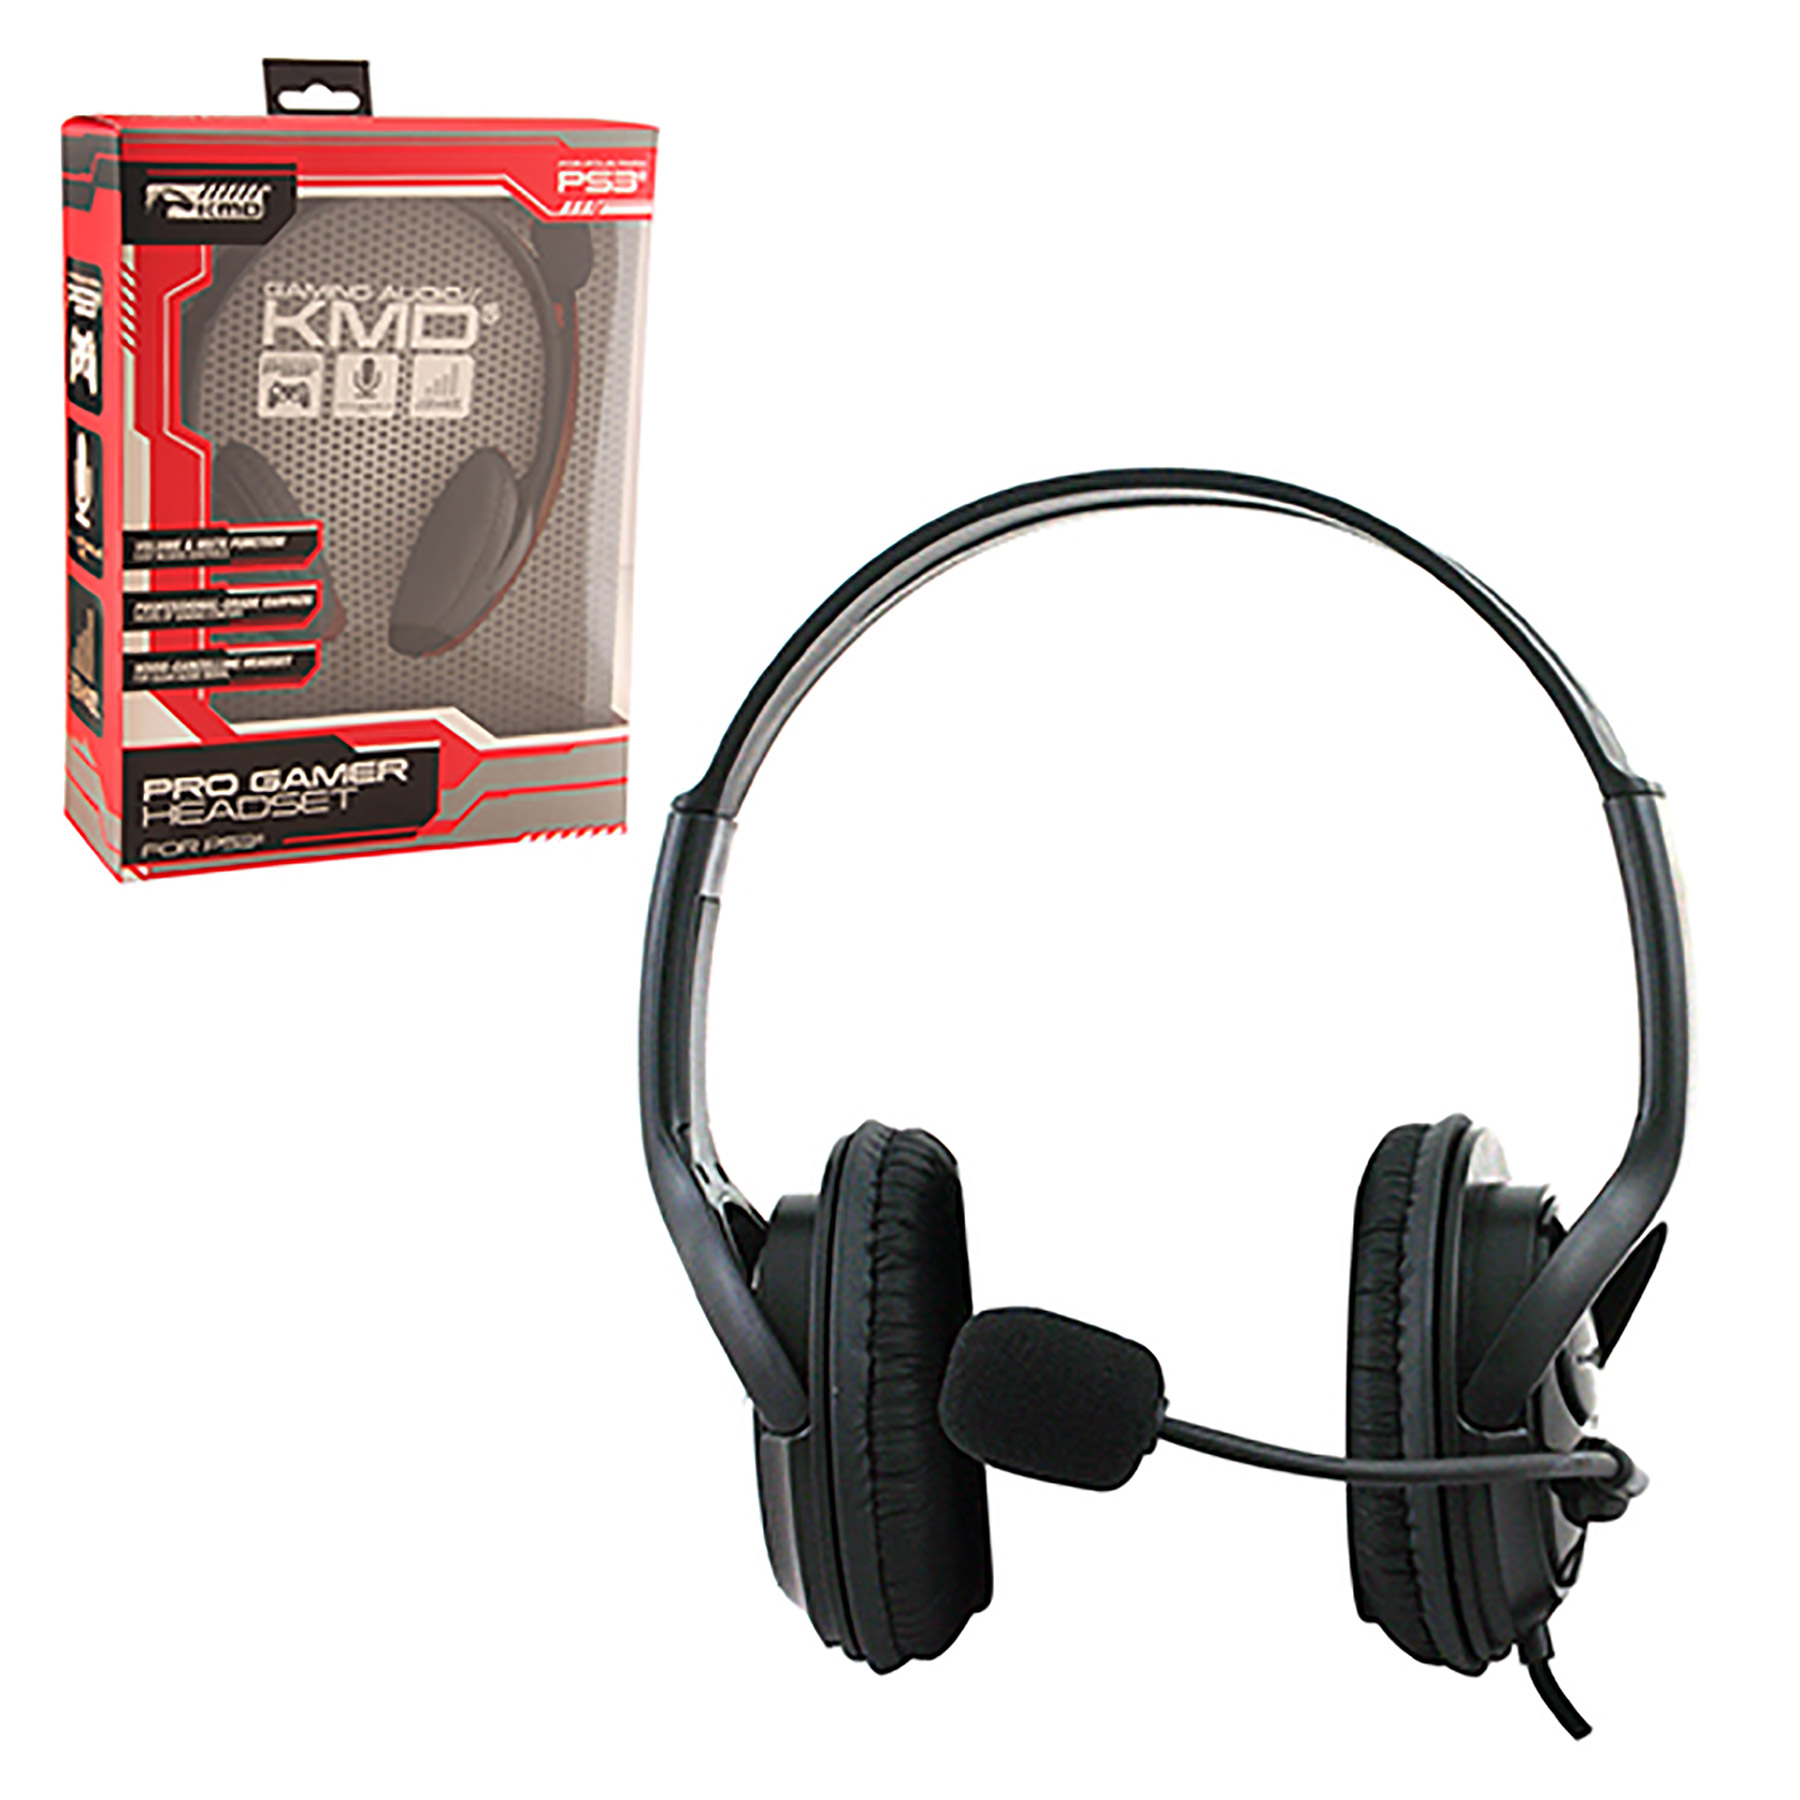 PS3/PS4 – Headset – Live Pro Gamer Headset with Mic – Black – LARGE (KMD)